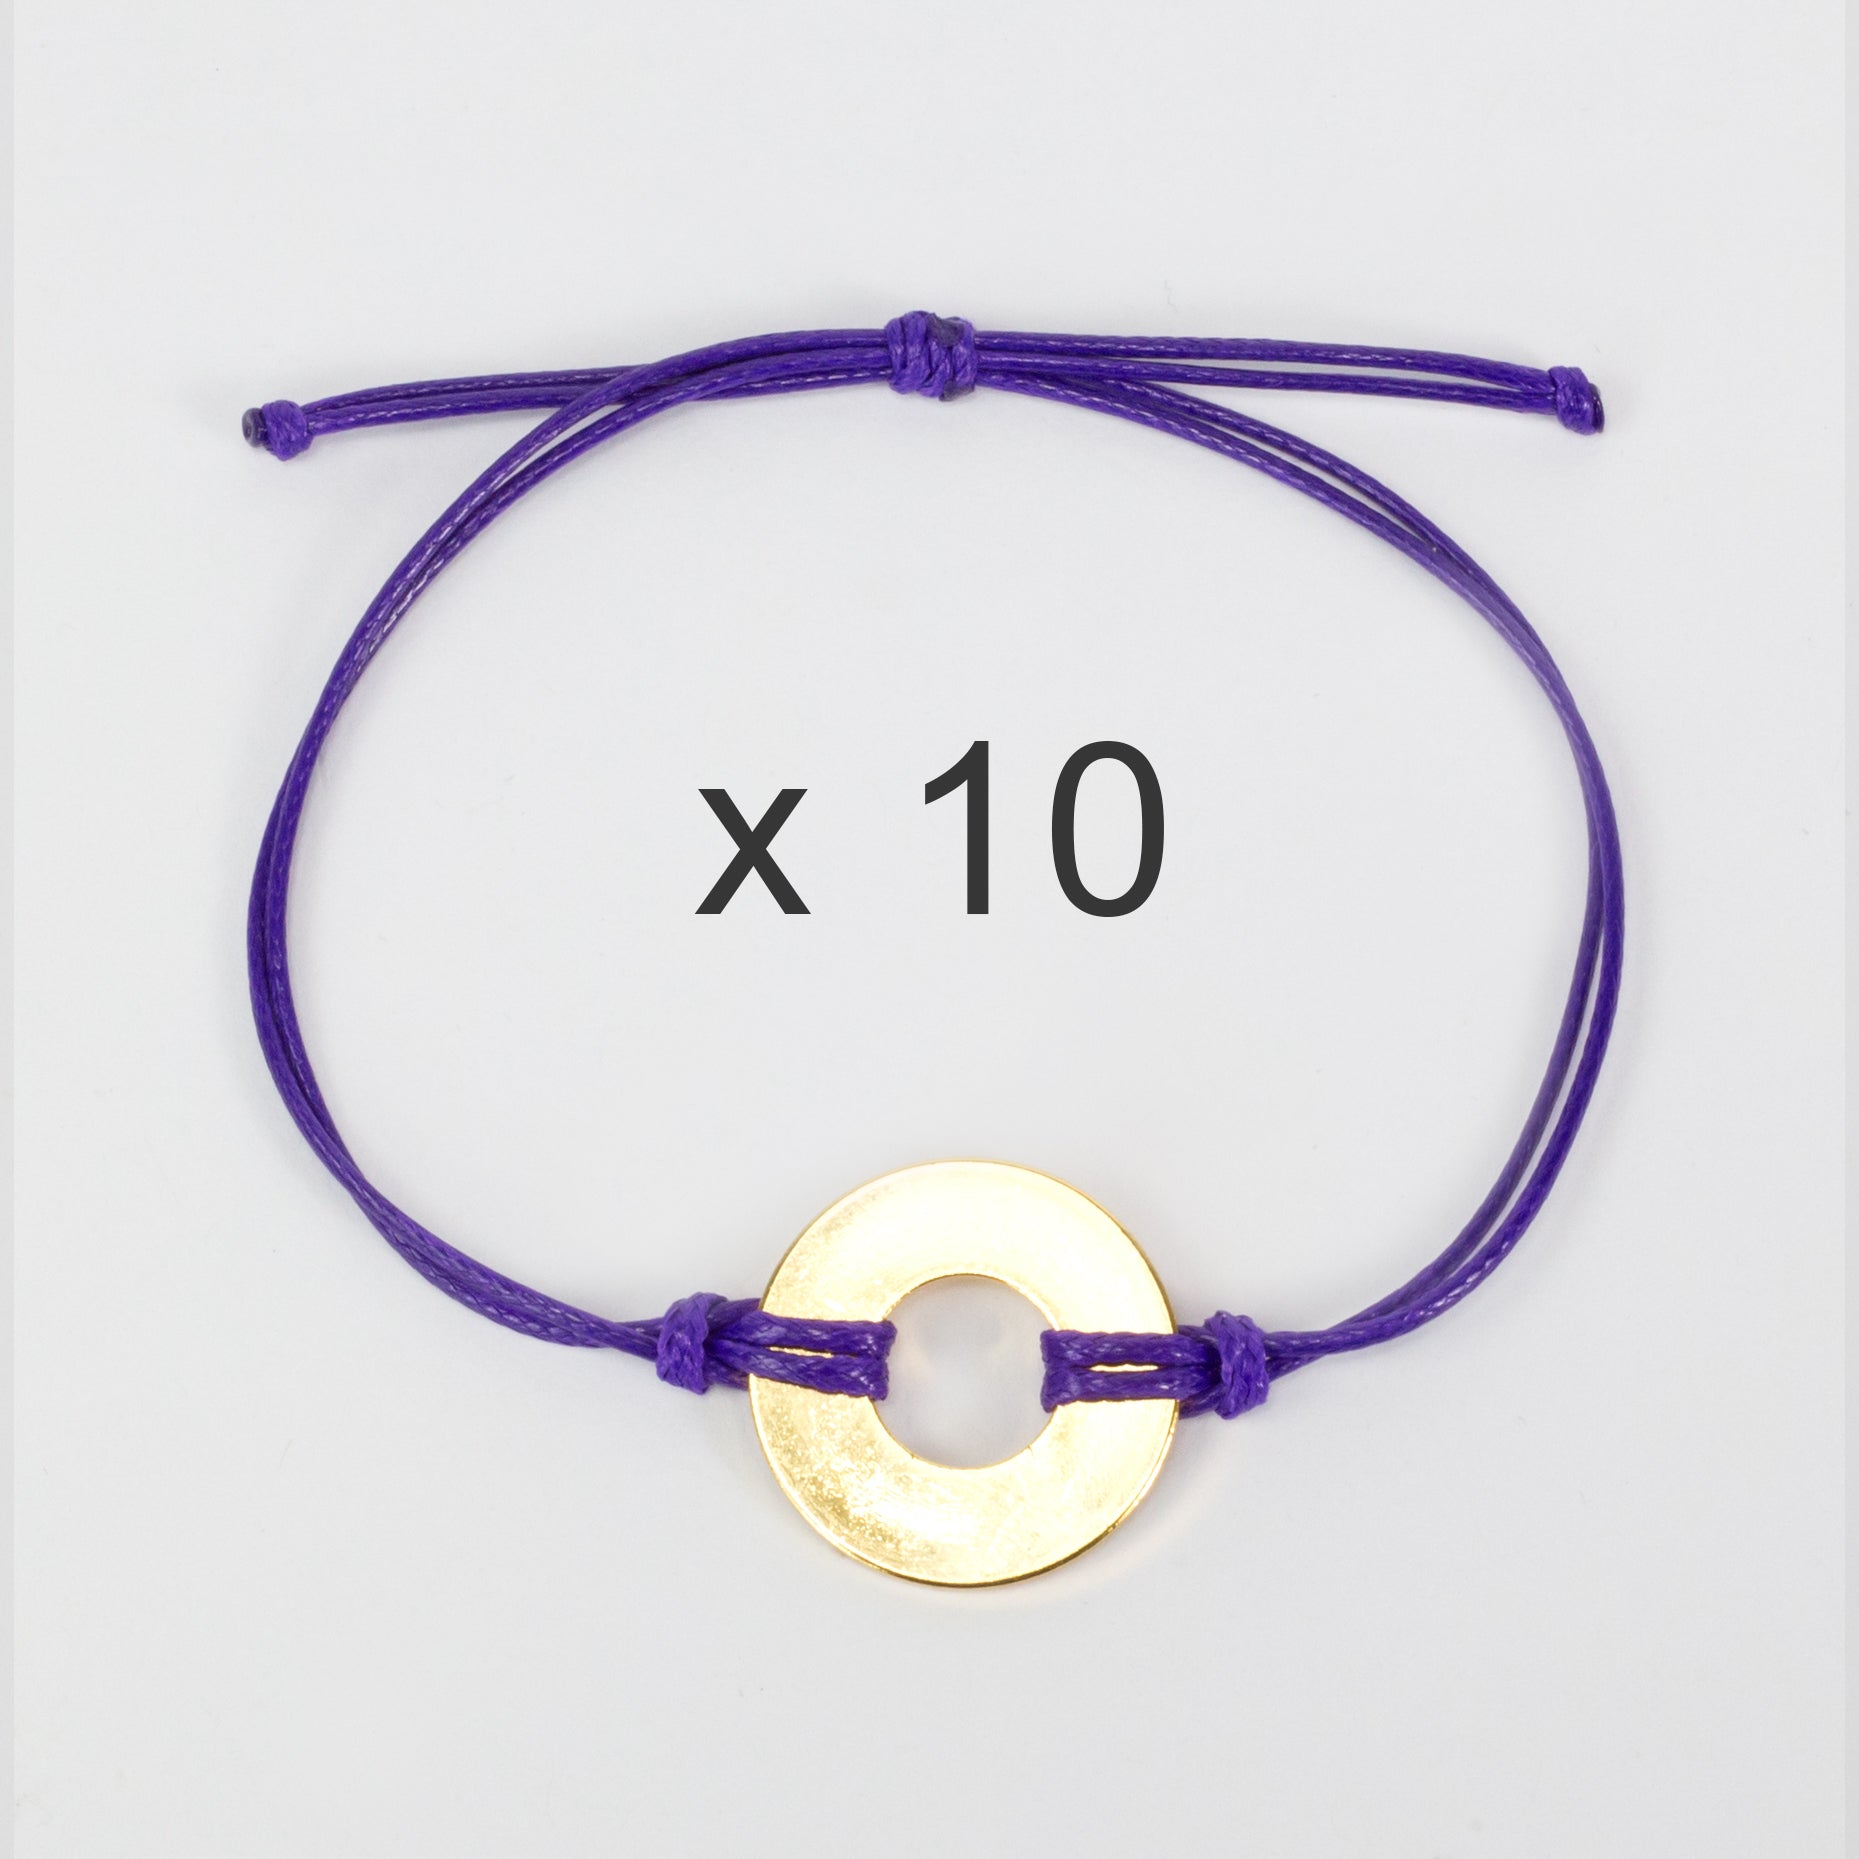 MyIntent Refill Classic Bracelets Purple String set of 10 with Brass tokens